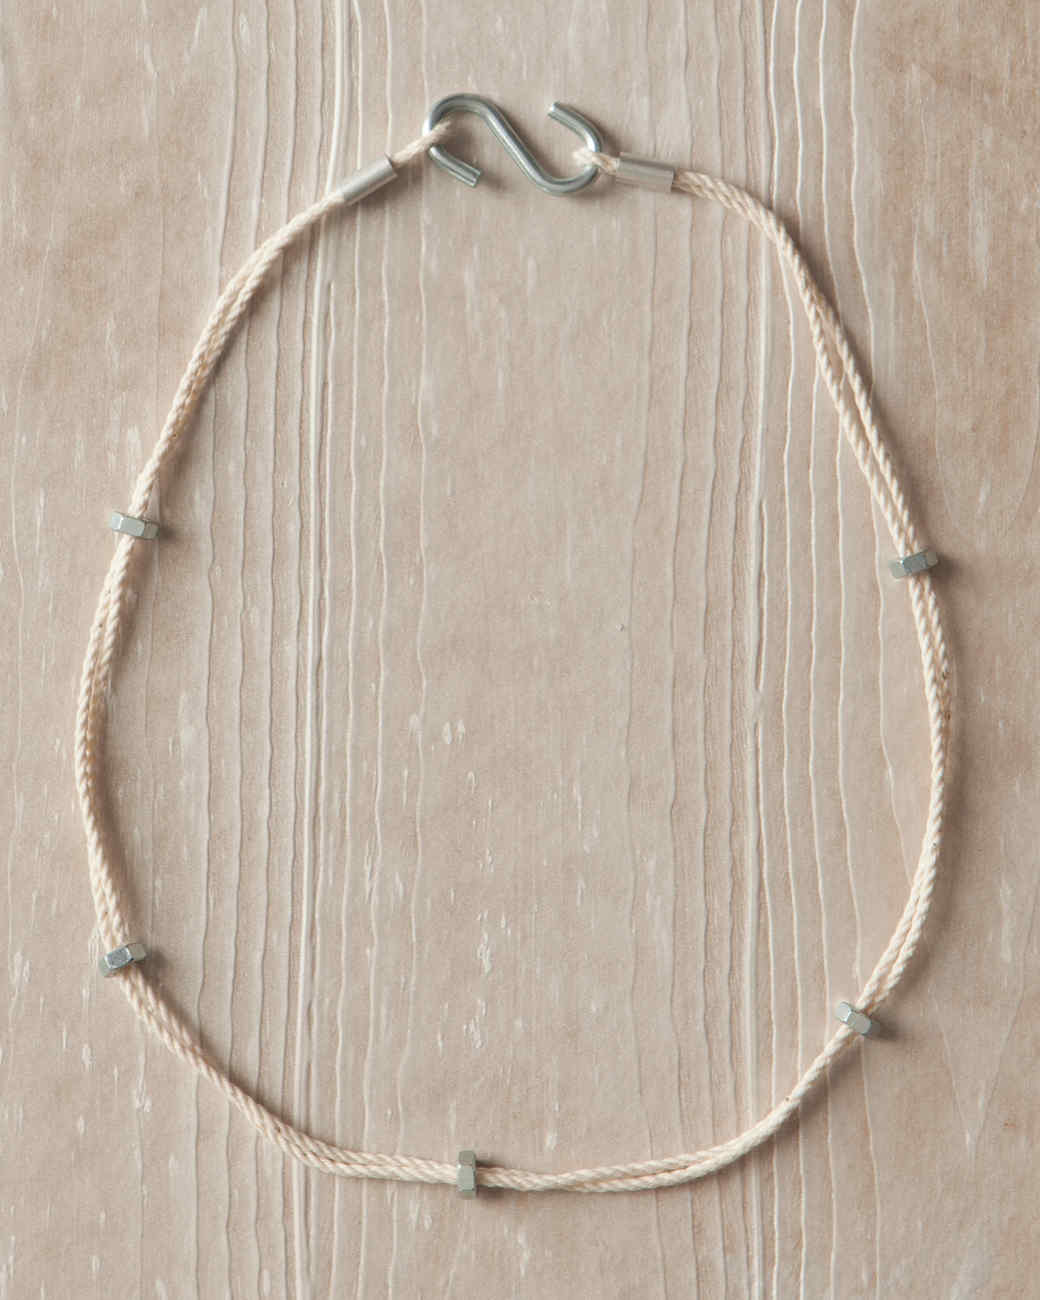 s-hook-necklace-hardware-jewelry-002-ld110089.jpg